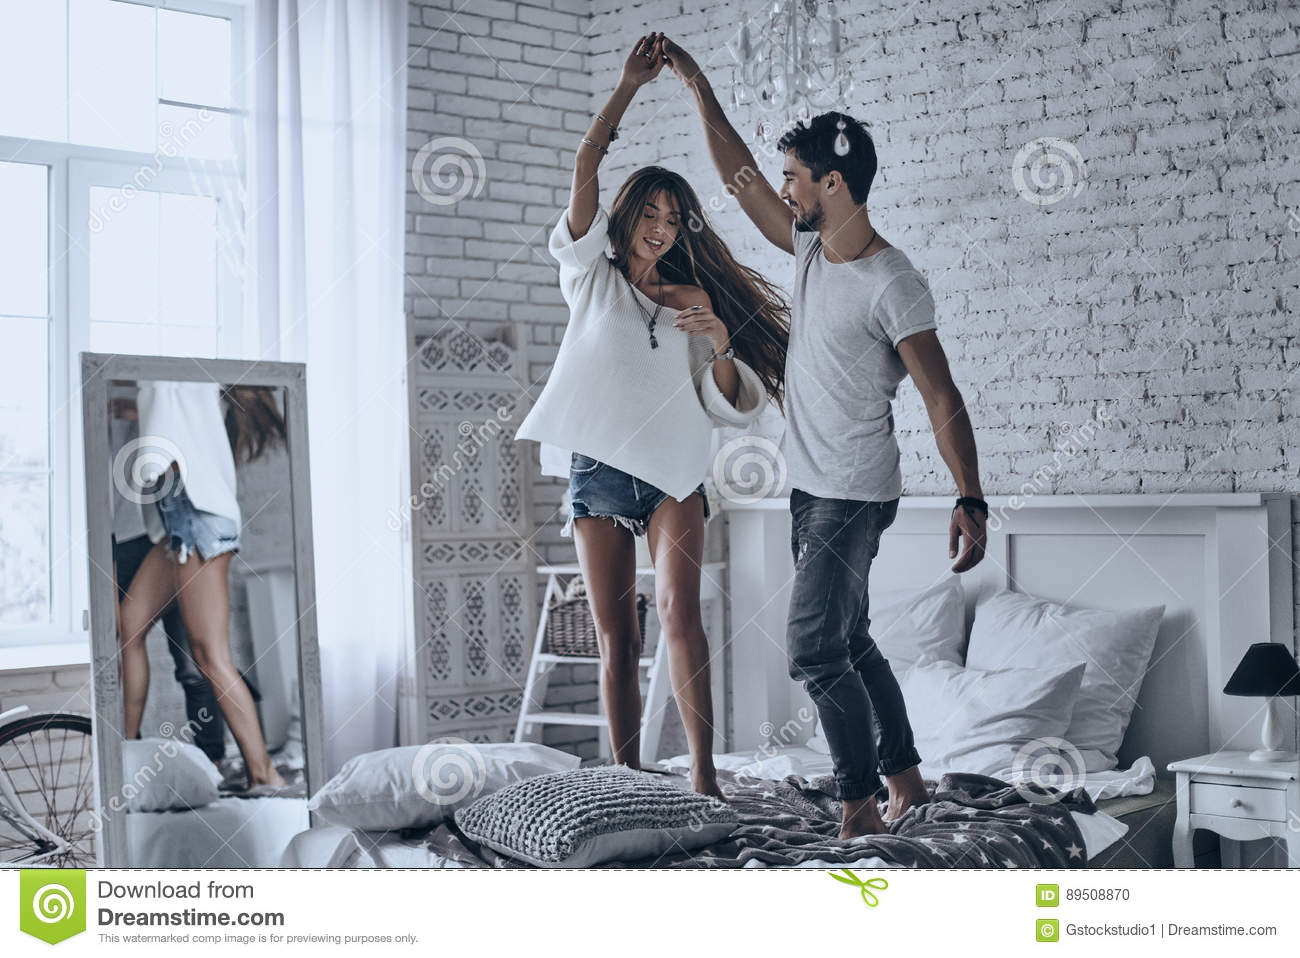 Dancing on the bed.